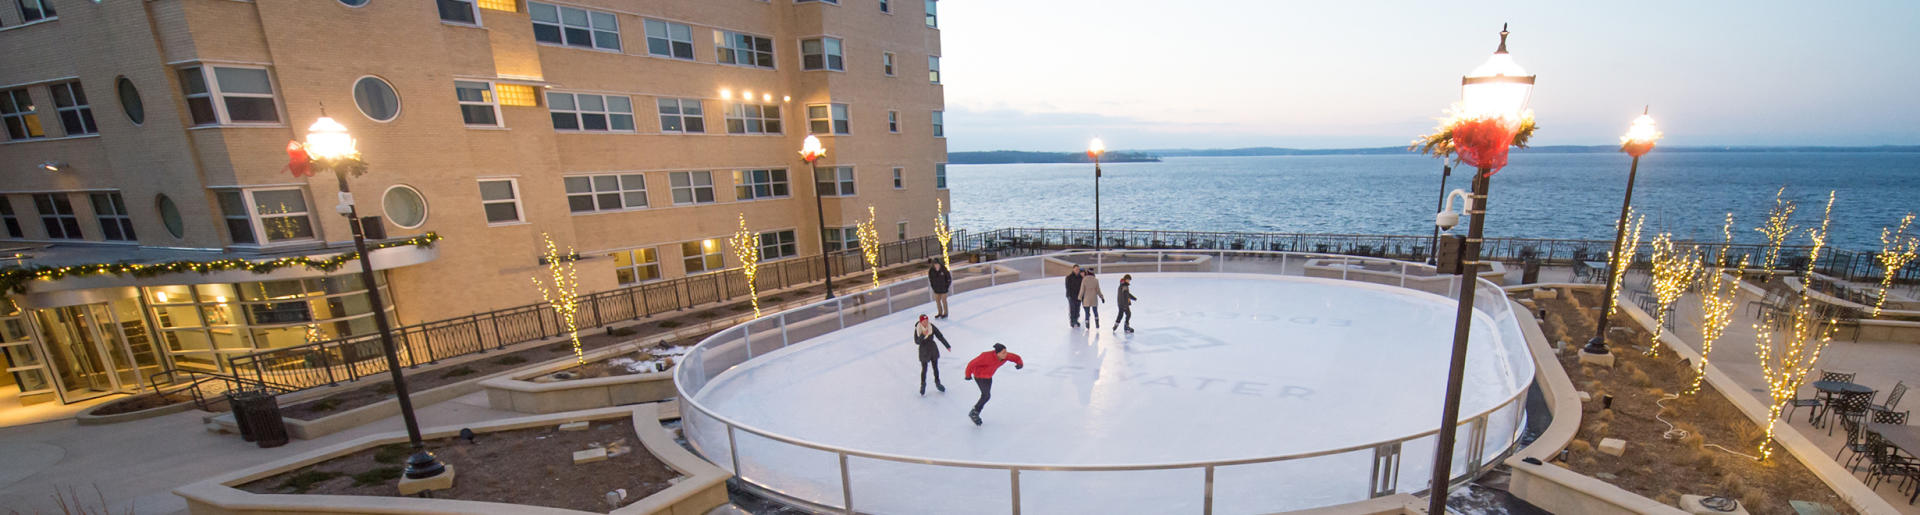 Edgewater Ice Skating Rink